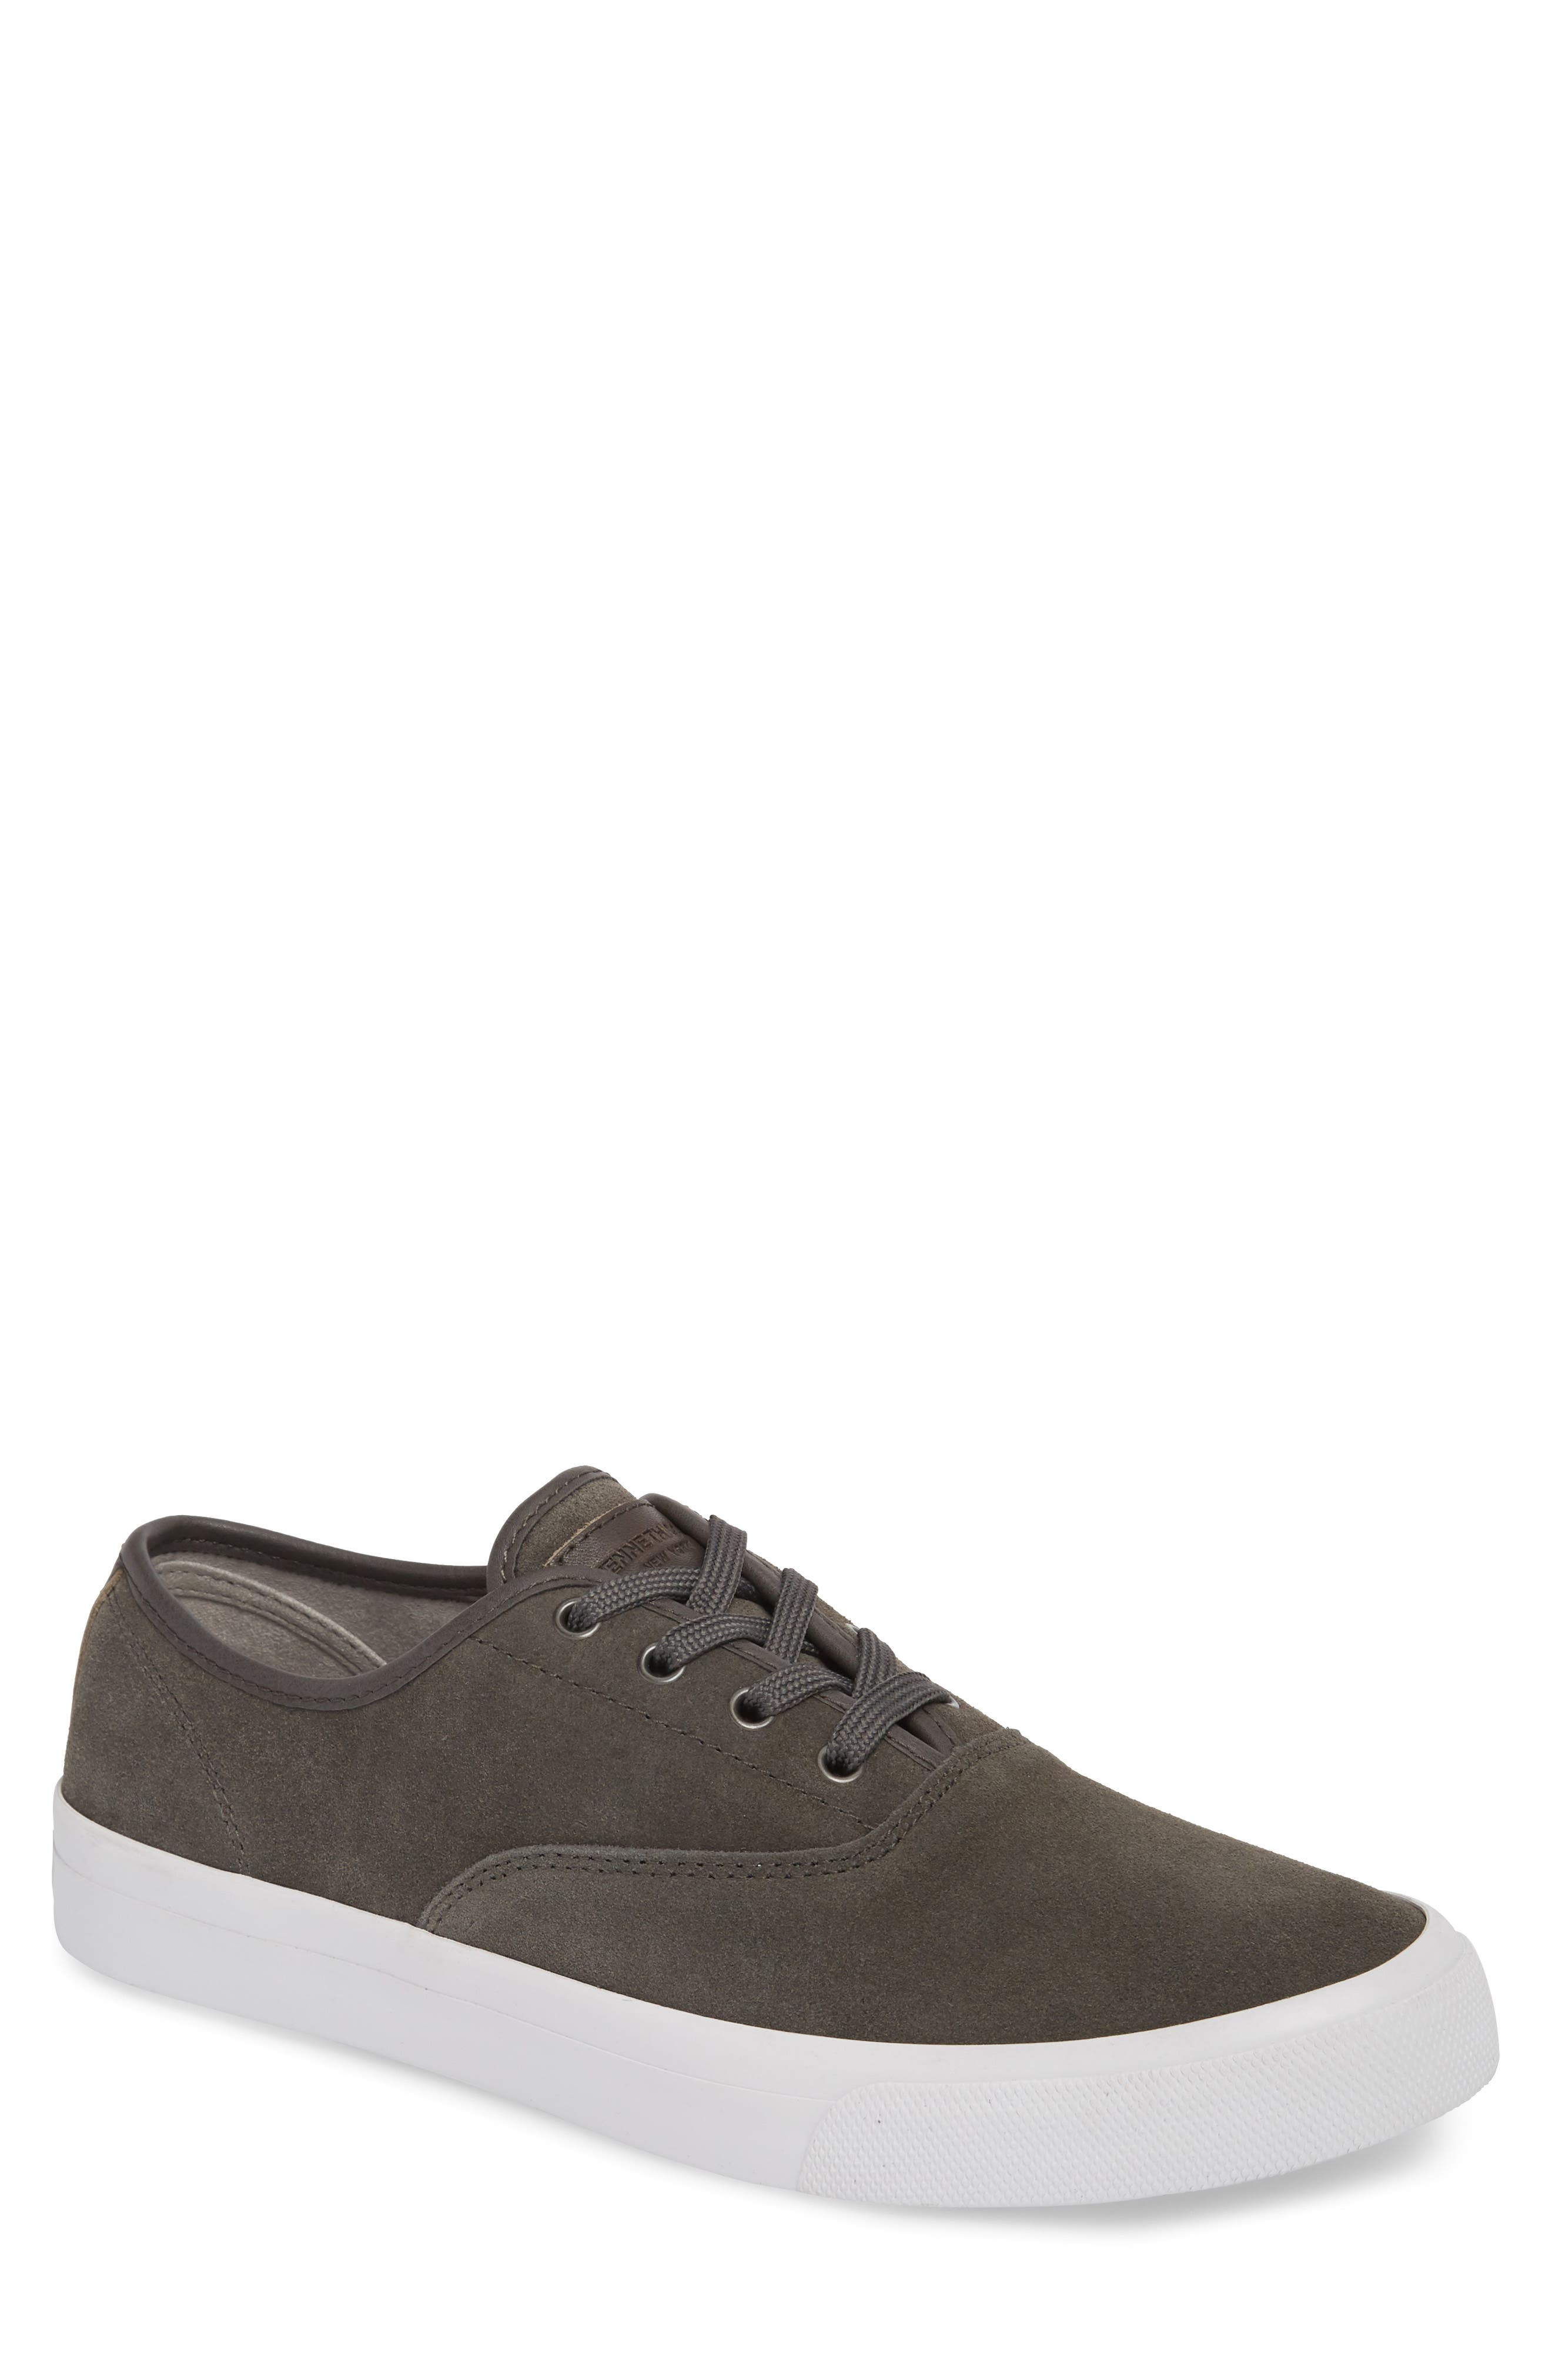 Toor Low Top Sneaker,                         Main,                         color, Grey Combo Suede